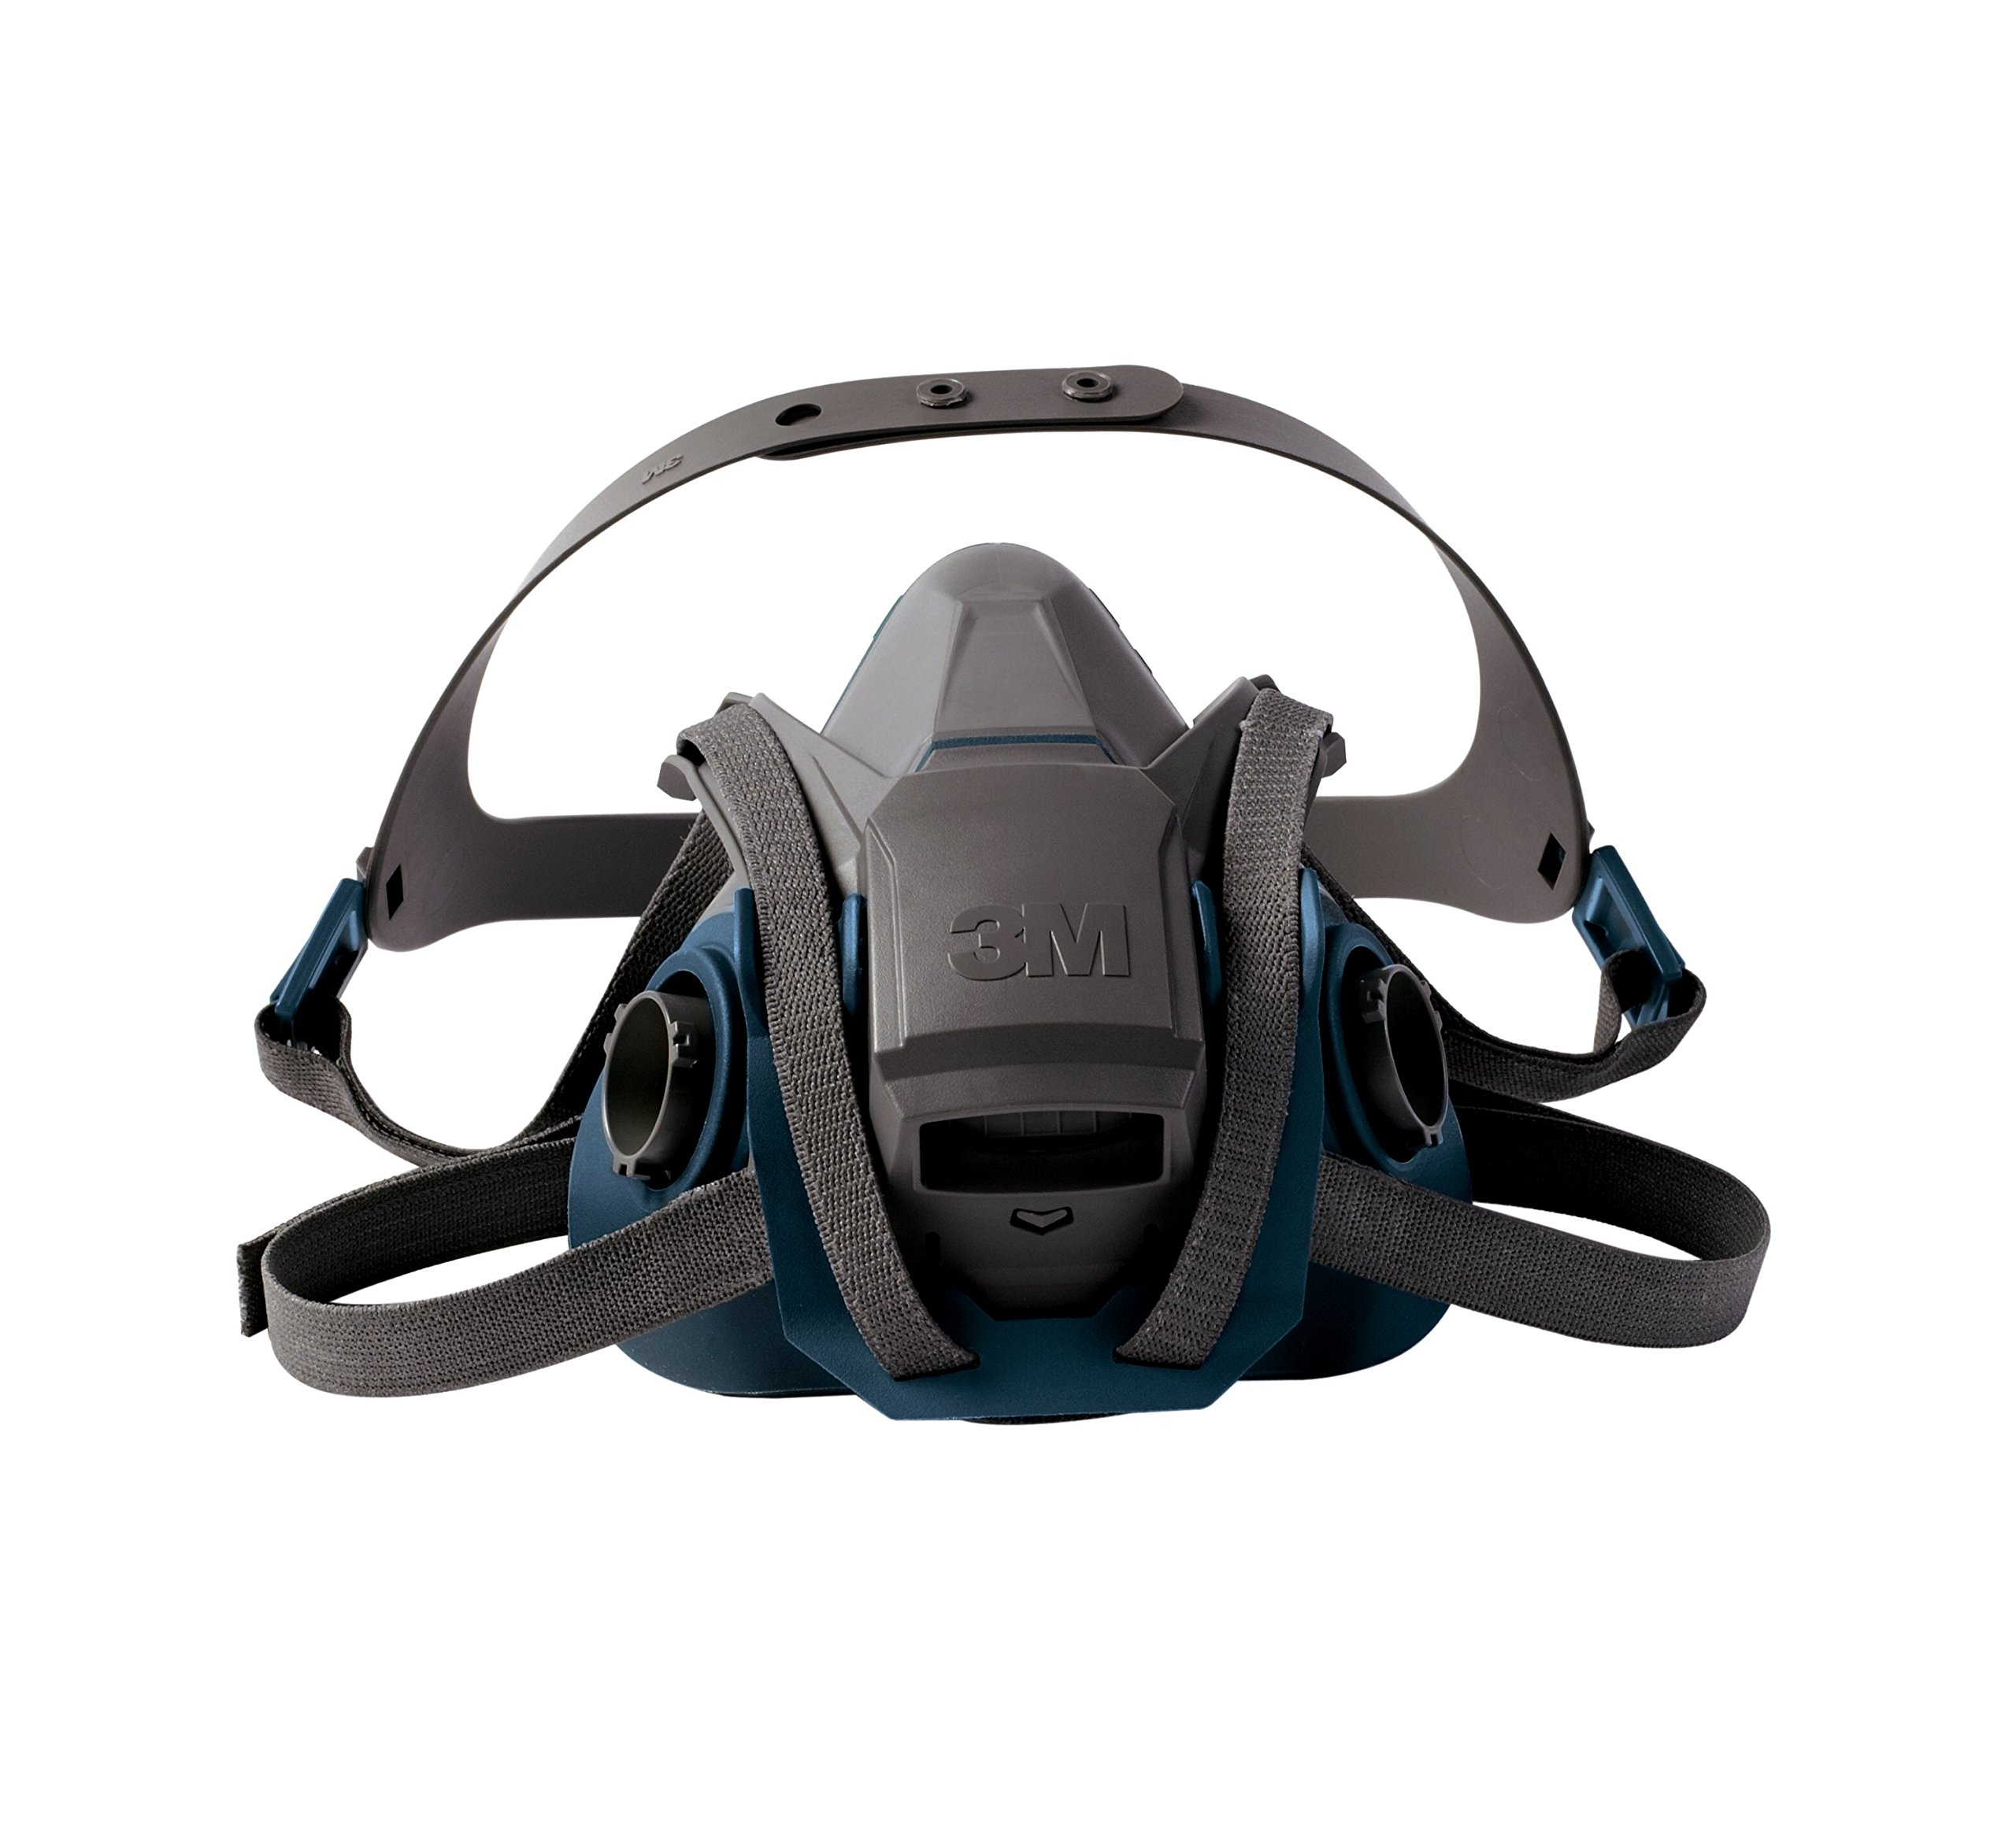 3M Rugged Comfort Quick Latch Half Facepiece Reusable Respirator 6503QL/49492, Large